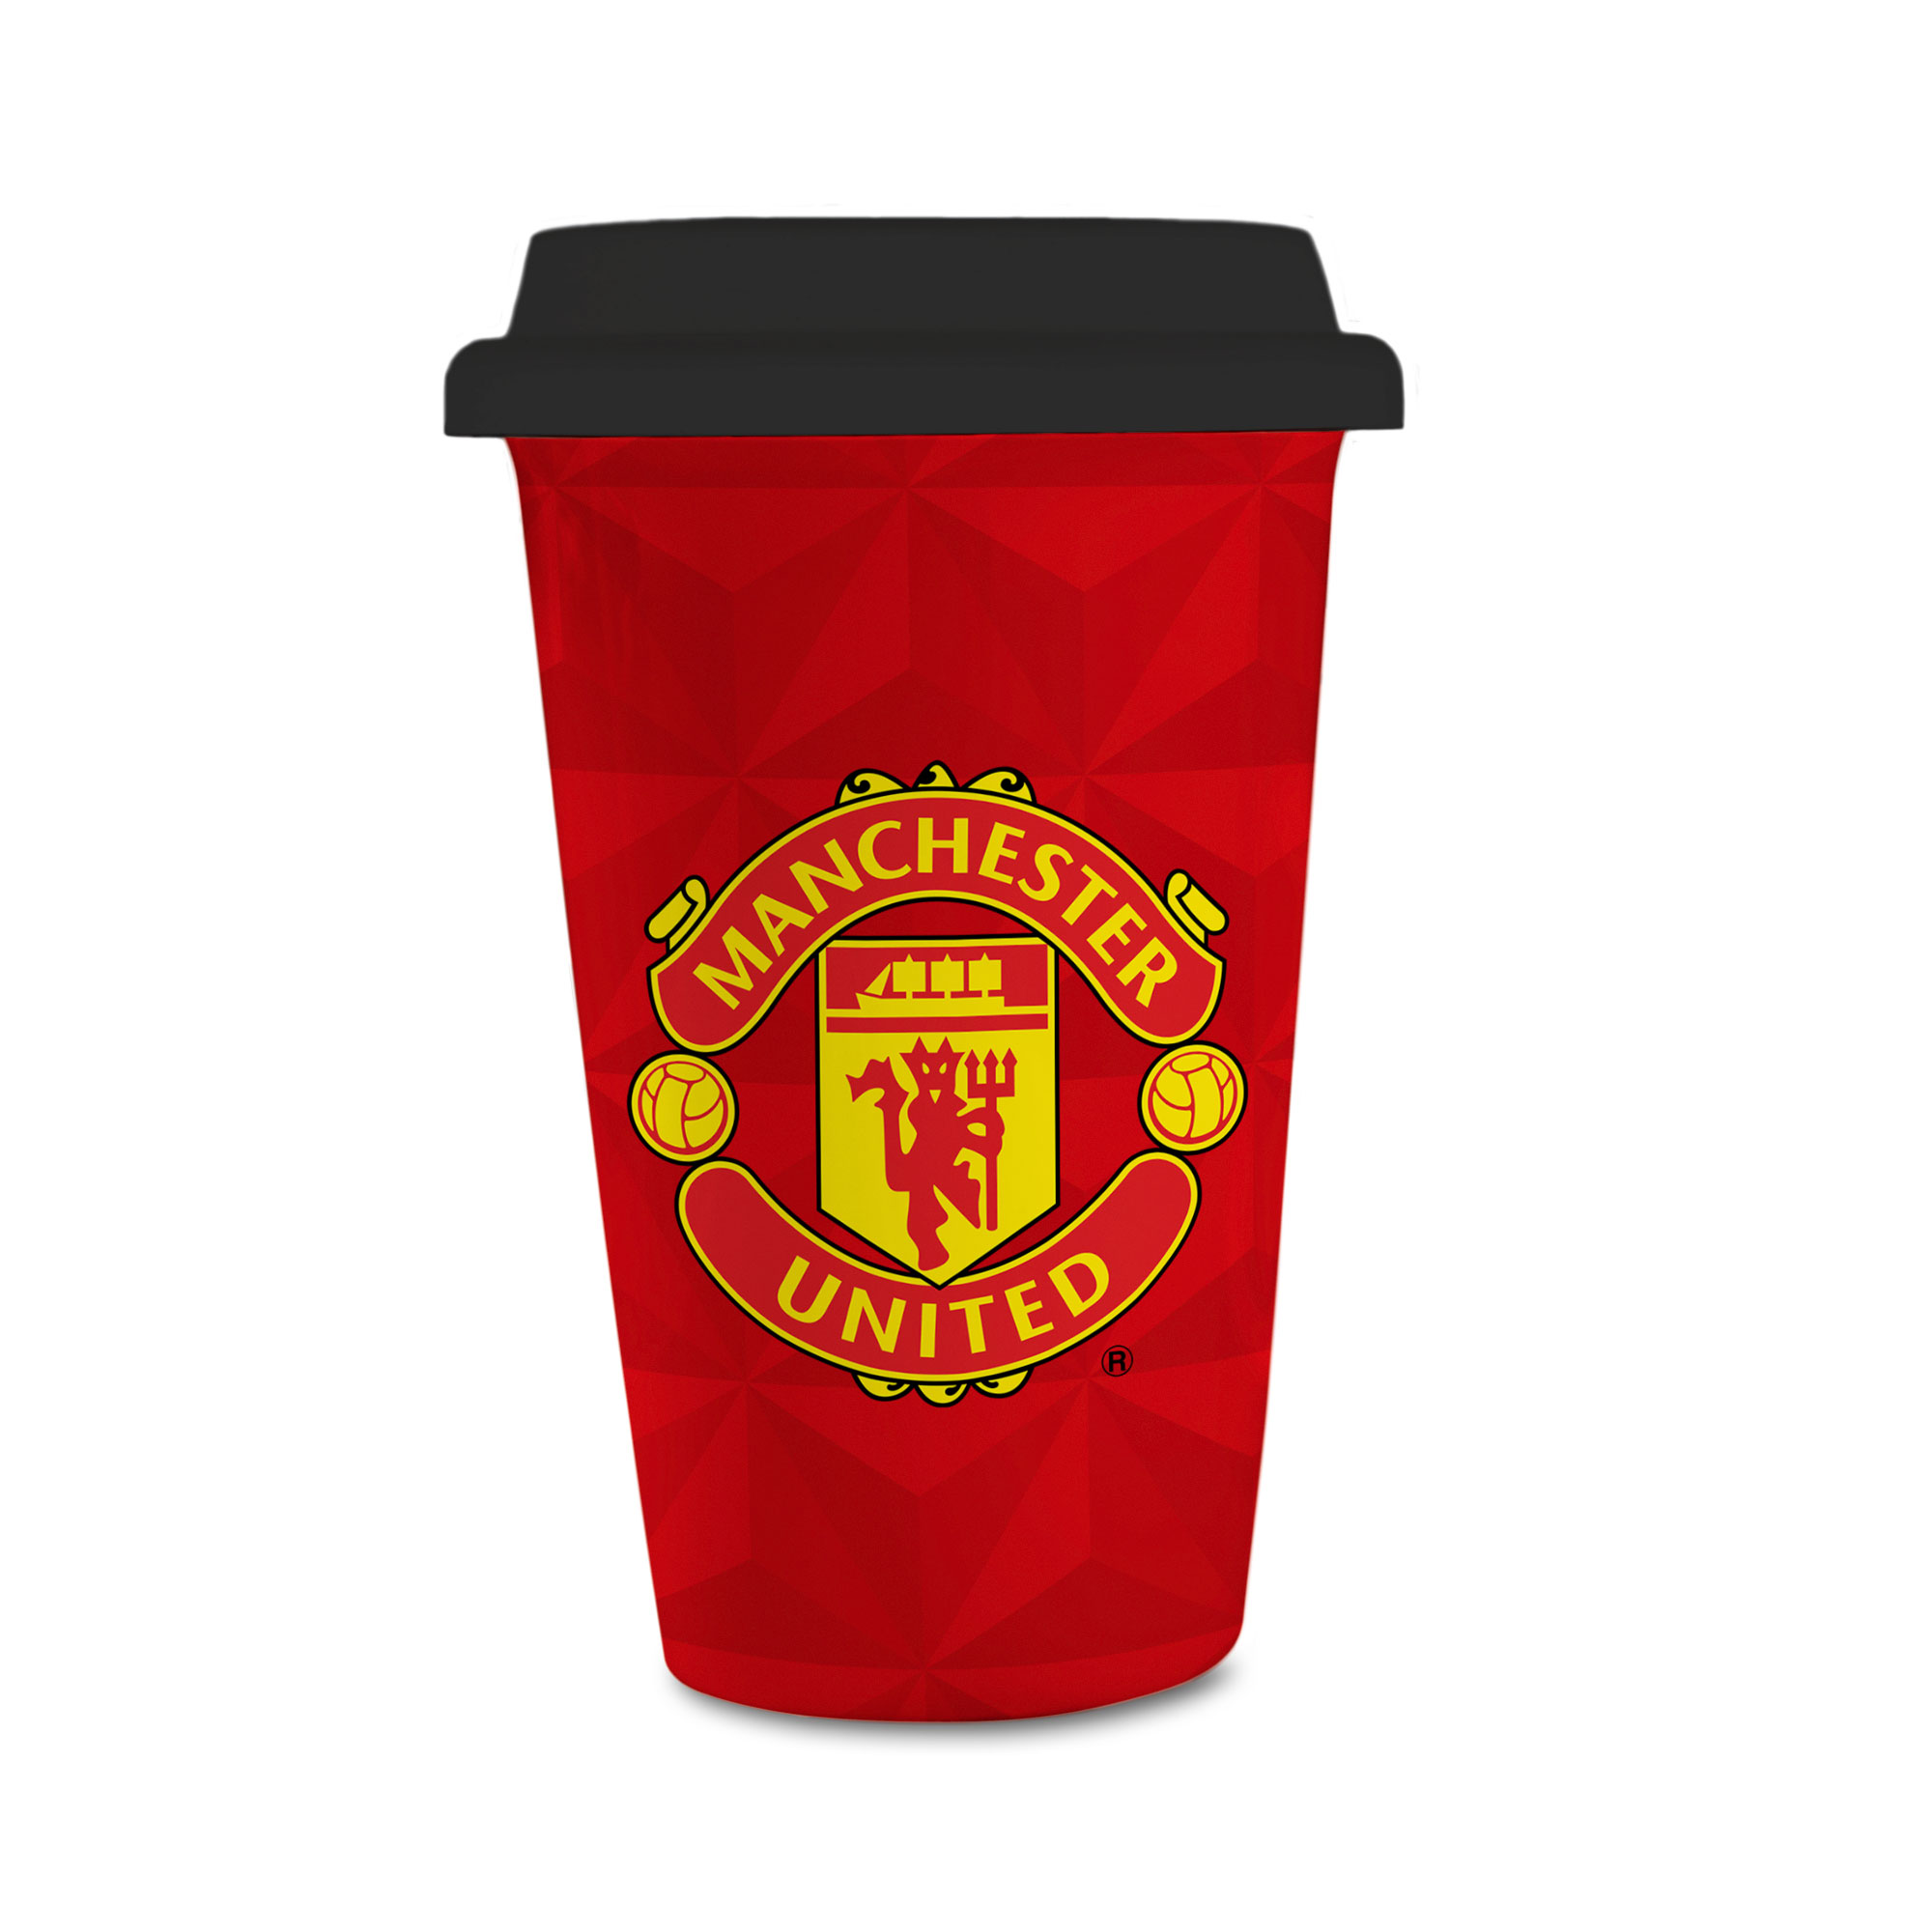 Manchester United FC Crest Reusable Cup